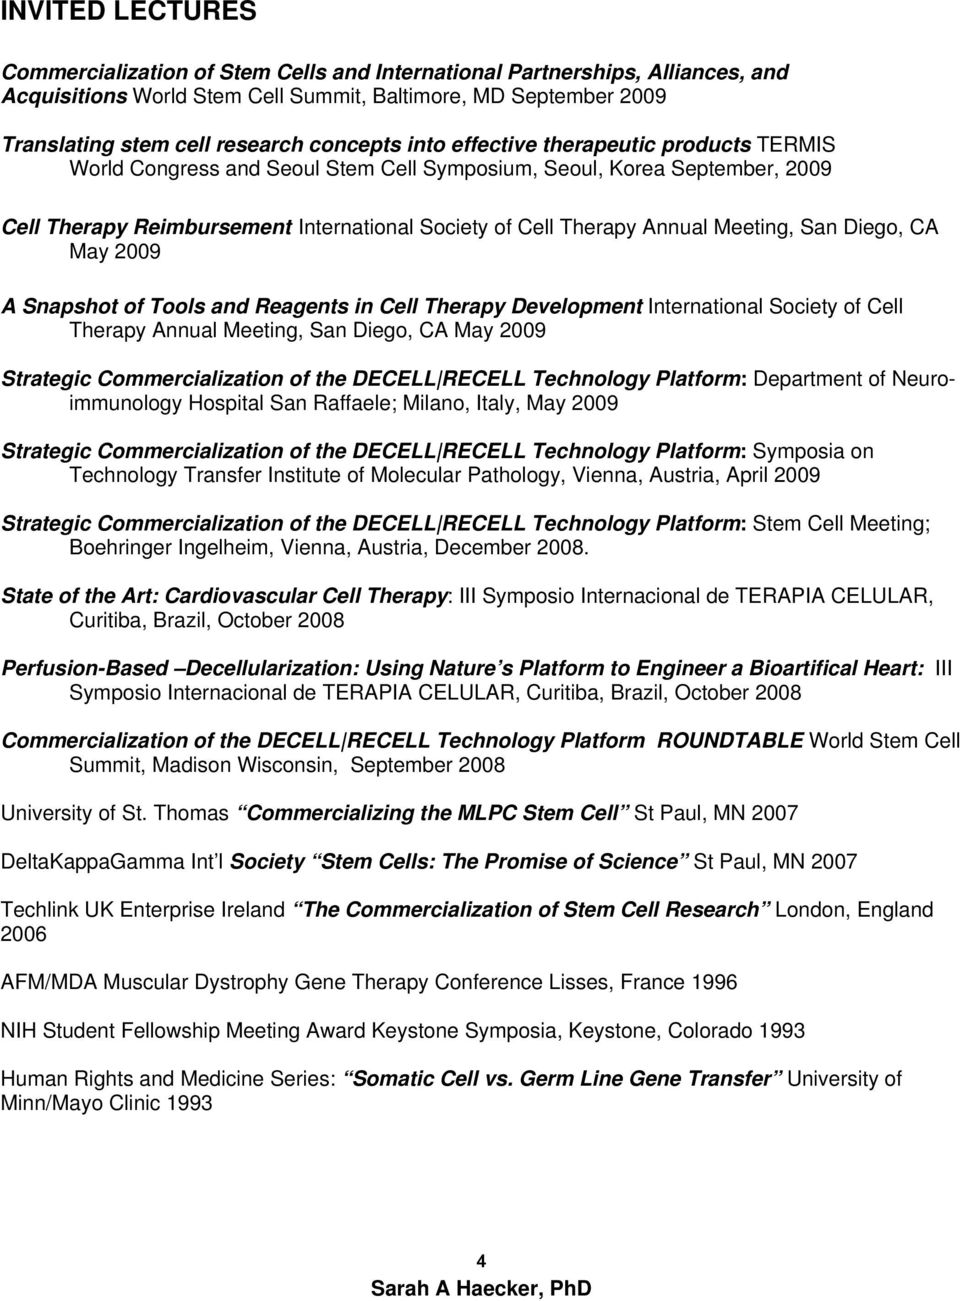 Meeting, San Diego, CA May 2009 A Snapshot of Tools and Reagents in Cell Therapy Development International Society of Cell Therapy Annual Meeting, San Diego, CA May 2009 Strategic Commercialization